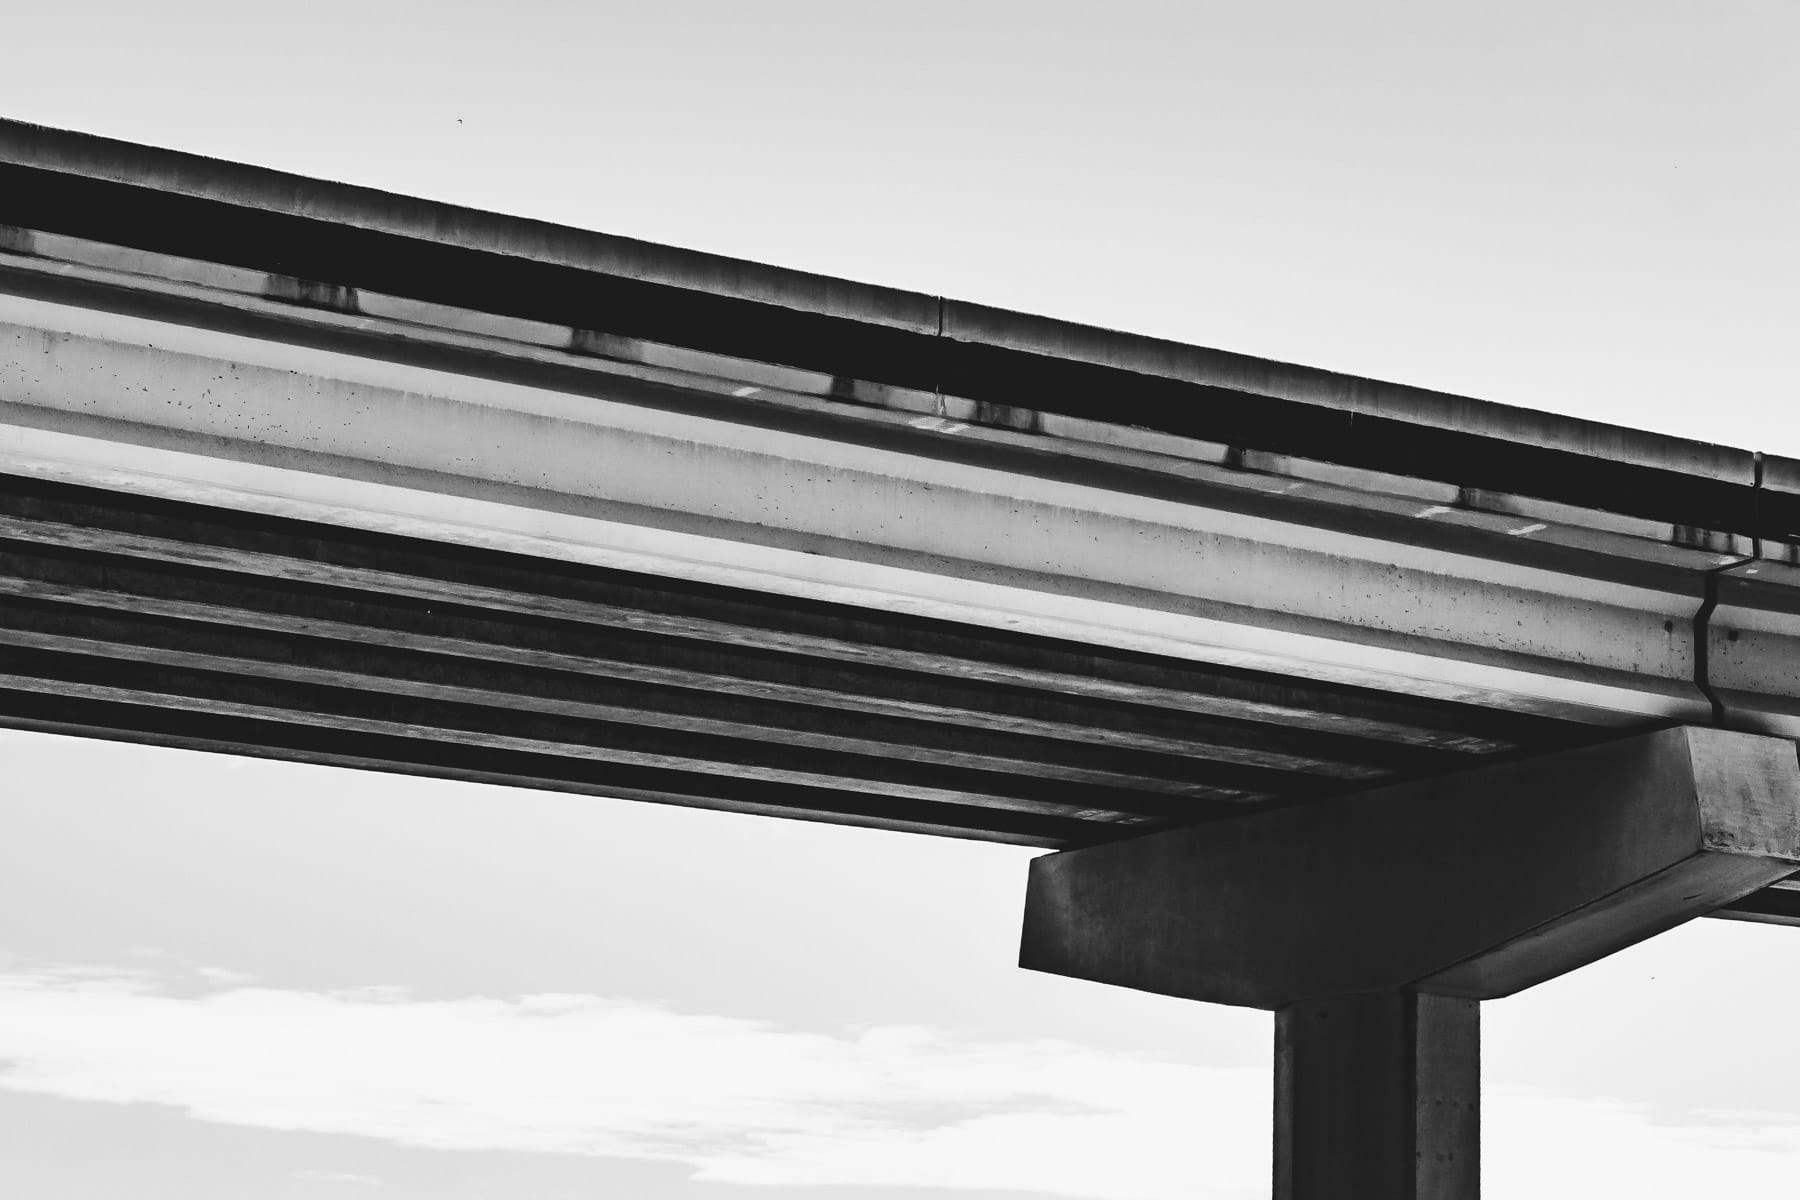 Detail of a bridge support on the President George Bush Turnpike in Plano, Texas.